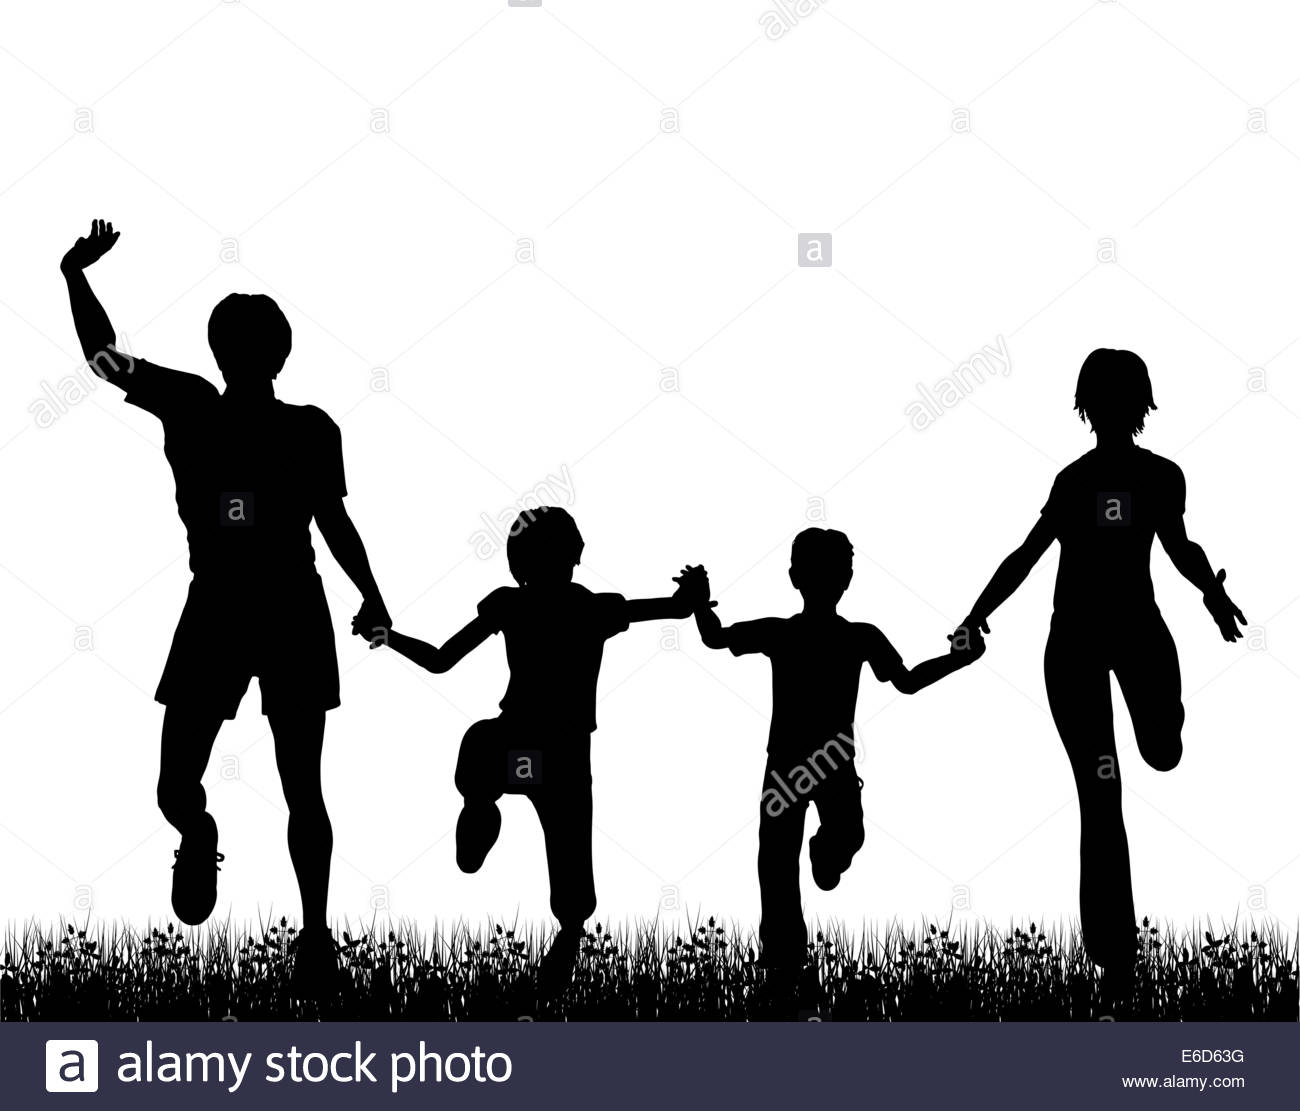 1300x1111 Editable Vector Silhouette Of A Happy Family Running Through Grass